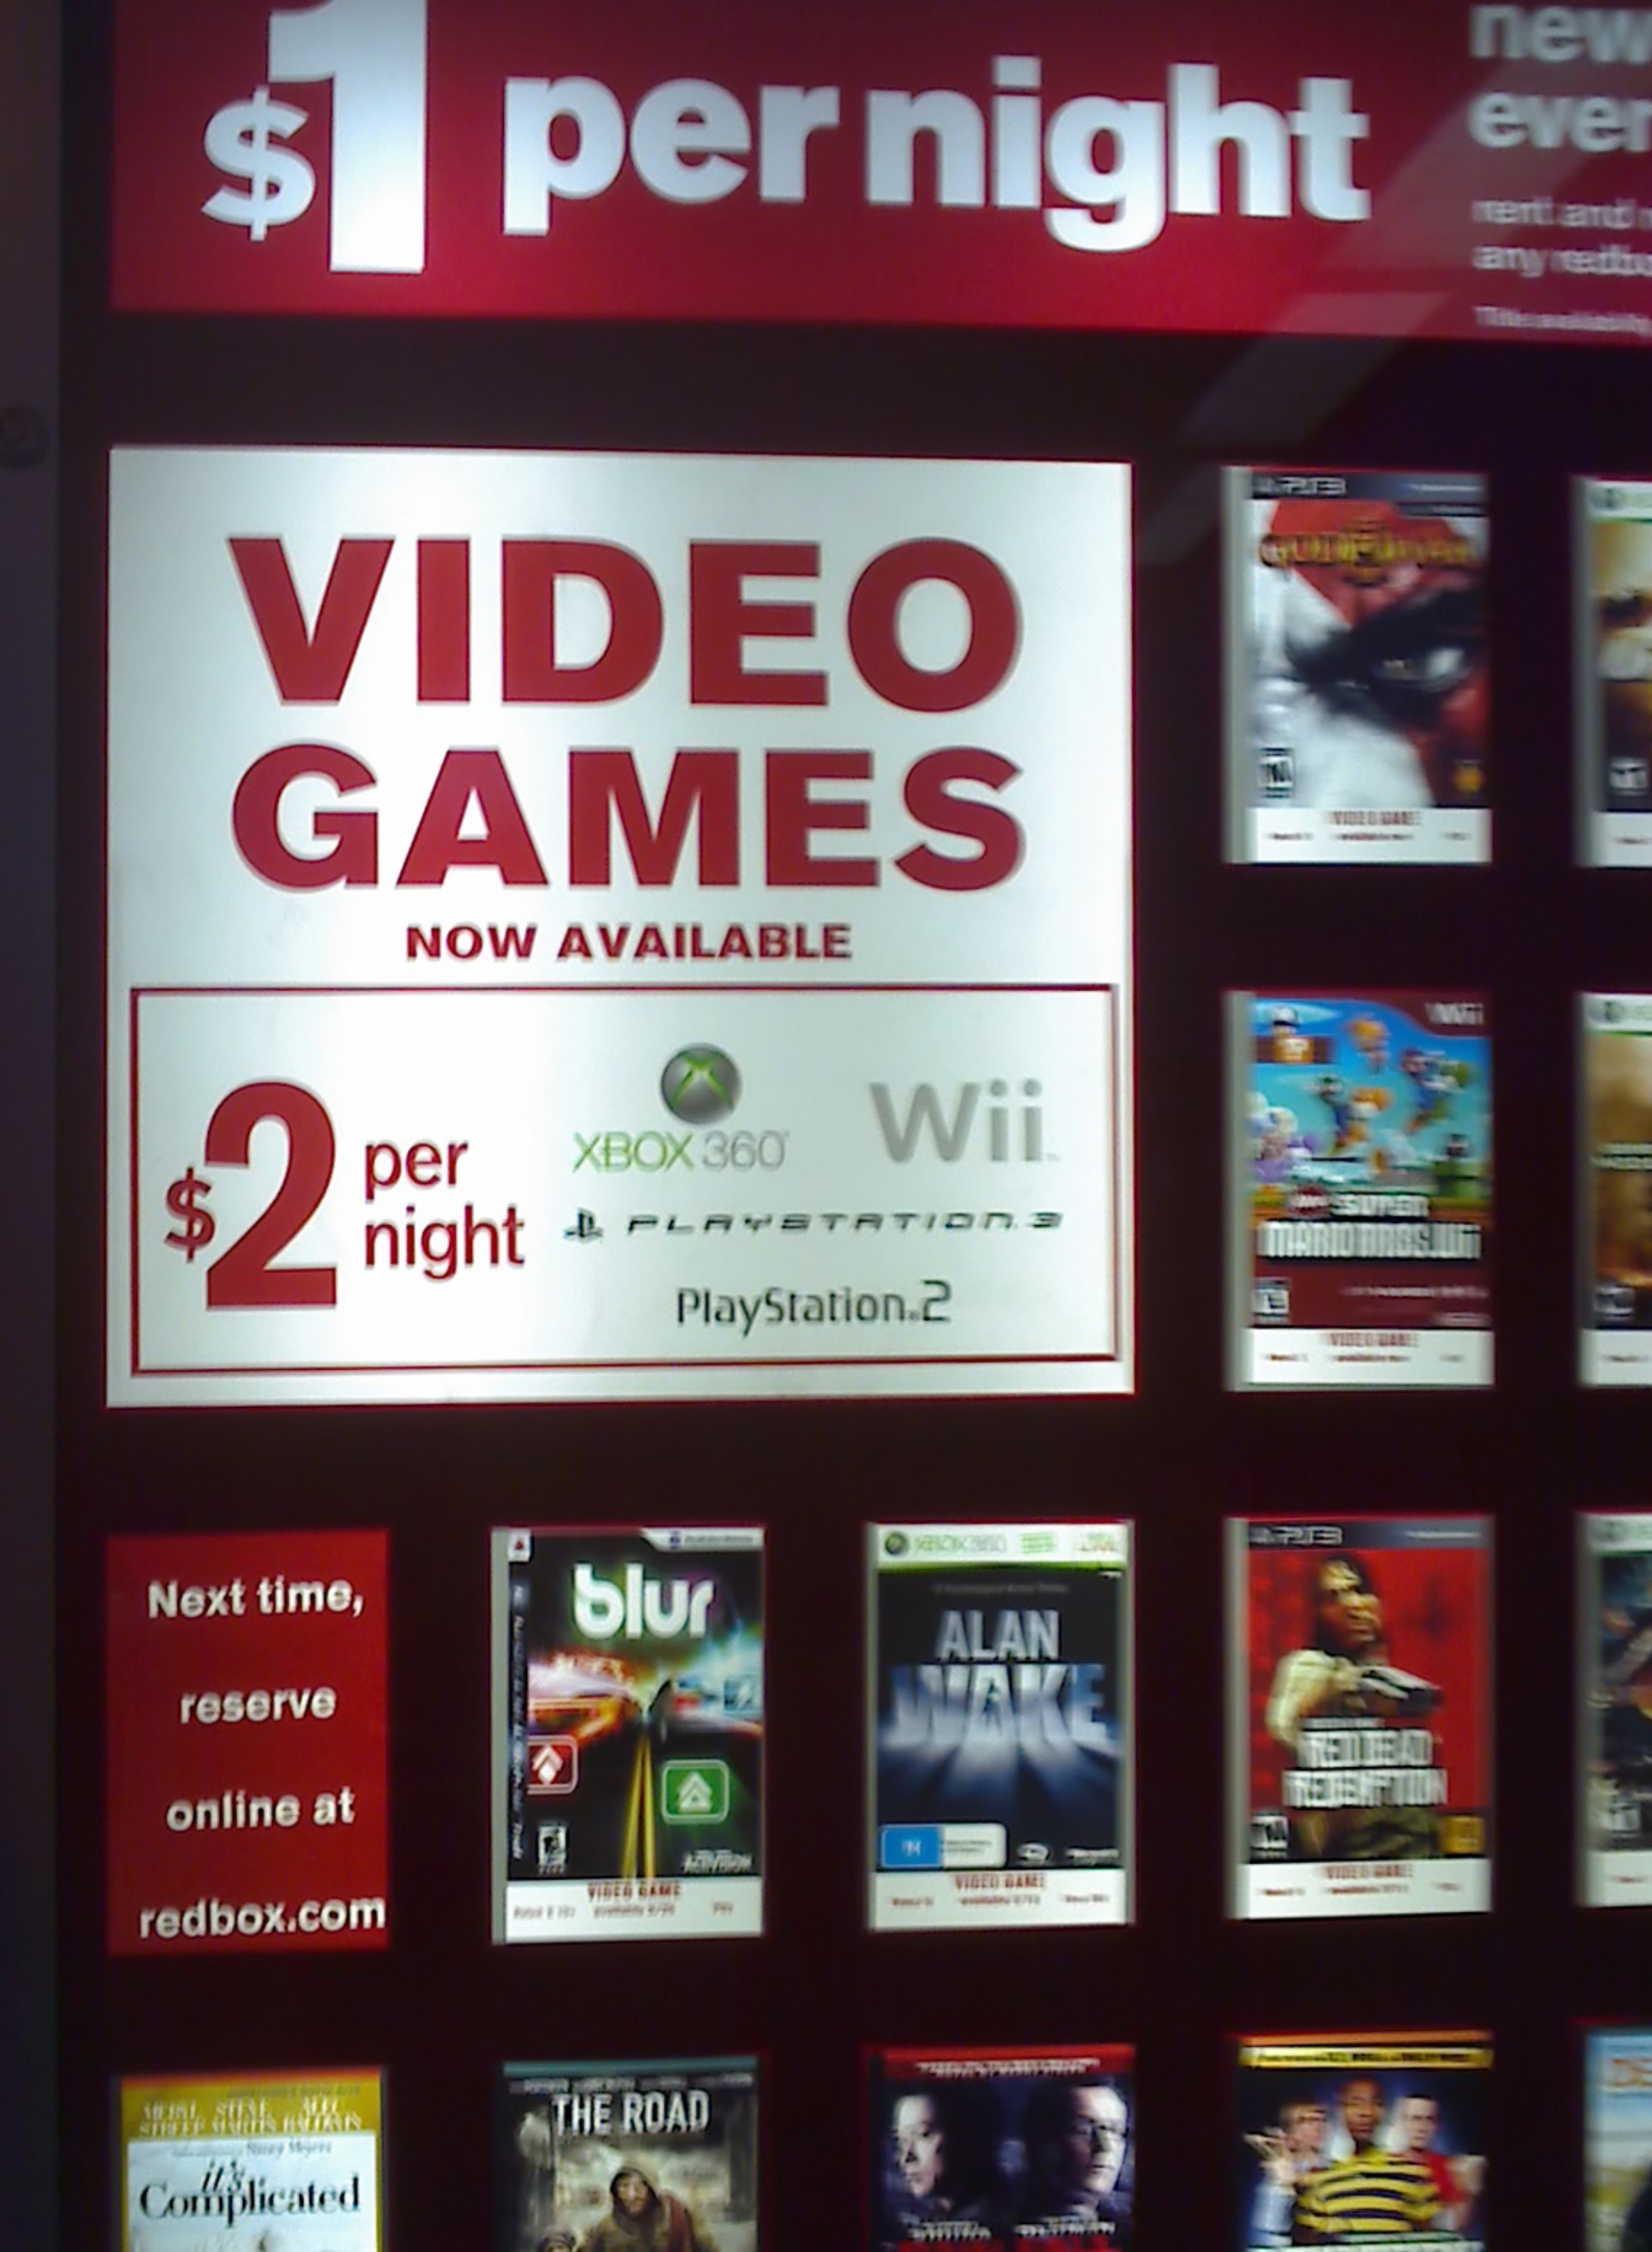 Redbox videogame rentals now available at kiosks or coming ...